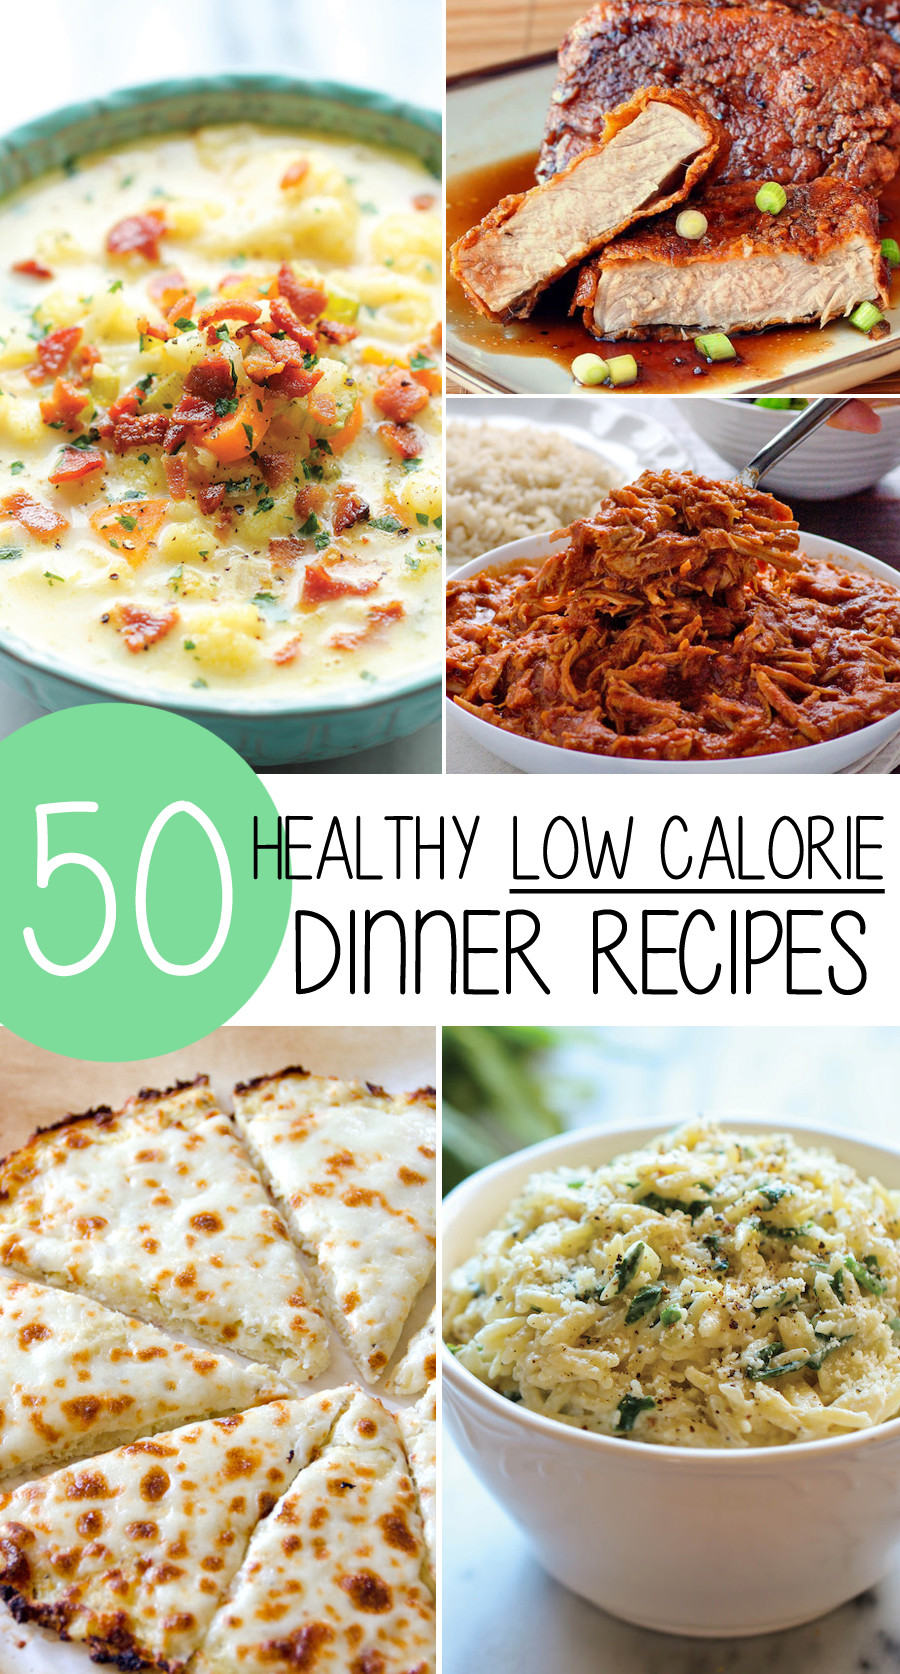 Healthy Dinner Recipes For Weight Loss  50 Healthy Low Calorie Weight Loss Dinner Recipes